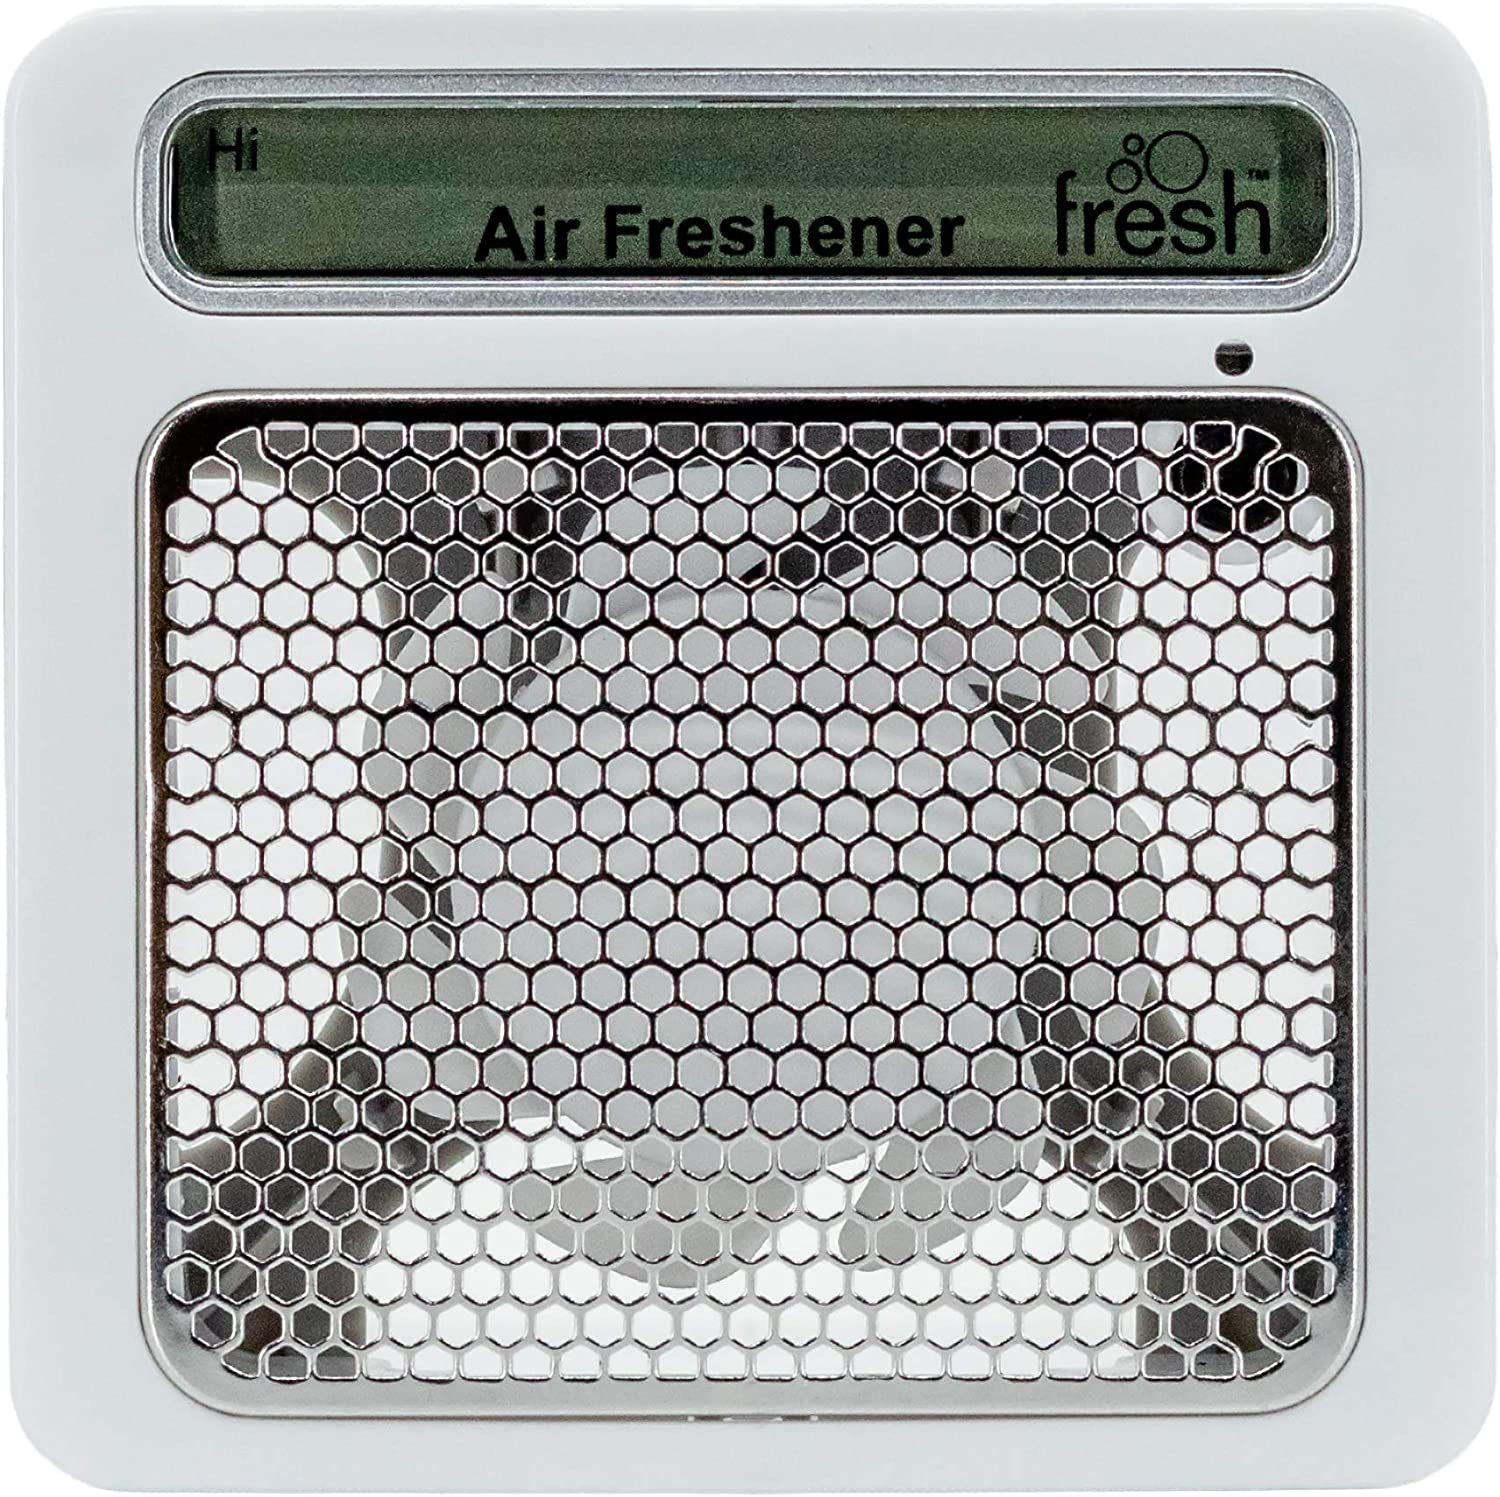 Super popular specialty store Fresh Products Limited price sale myfresh Dispenser Compact Freshener Air Design